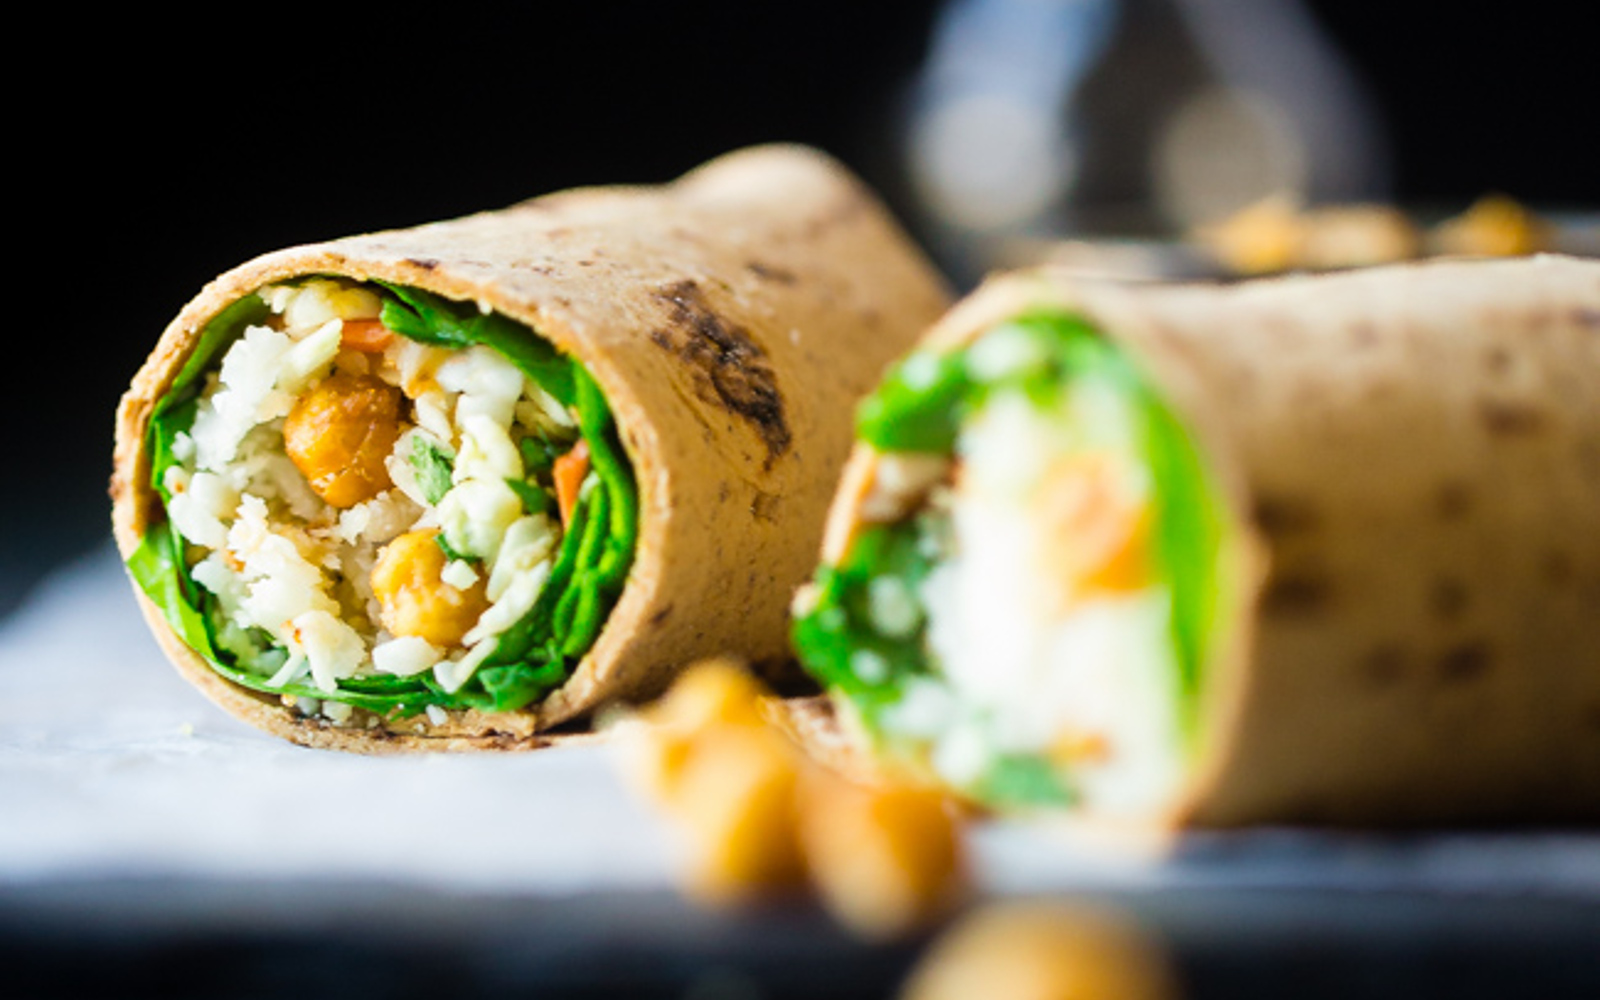 'Honey' Garlic Roasted Chickpea Wraps 1